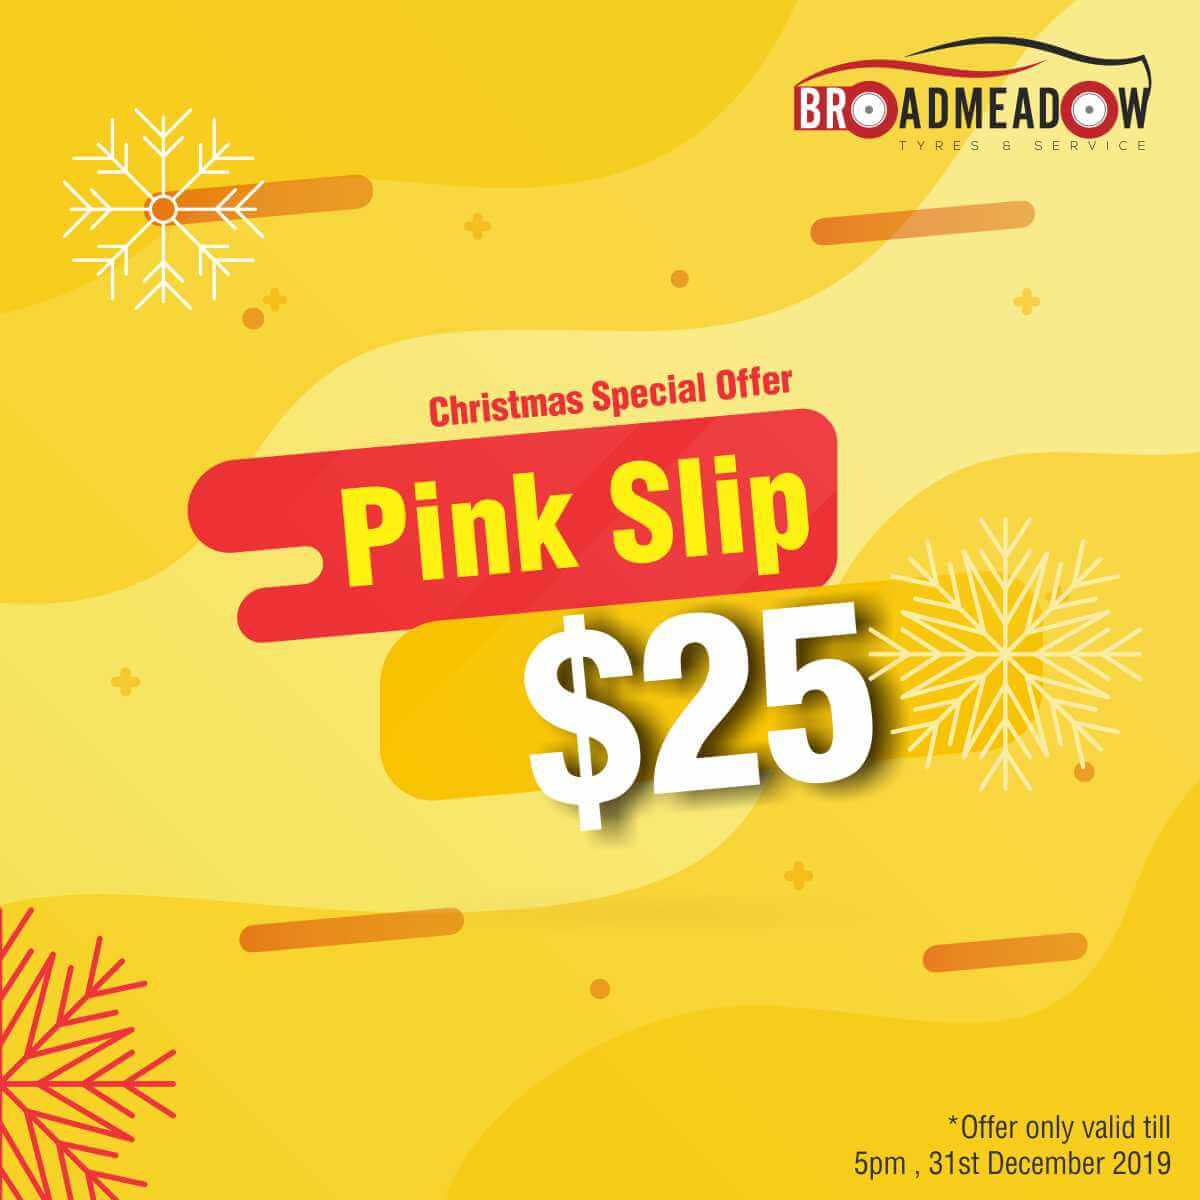 Christmas Specials - Pink Slip